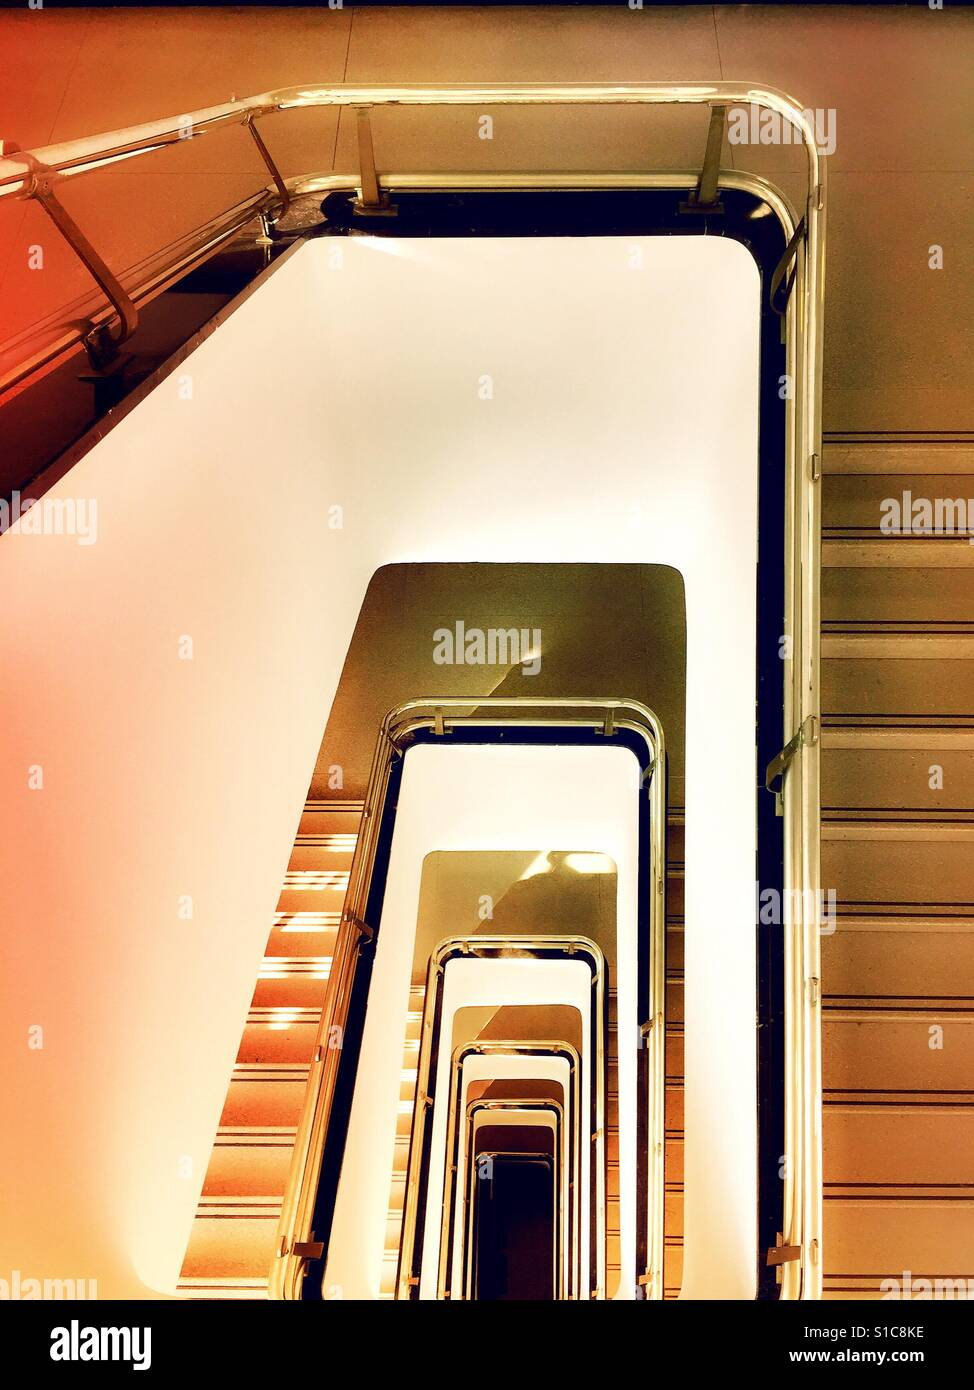 Stairwell in multi story building USA - Stock Image